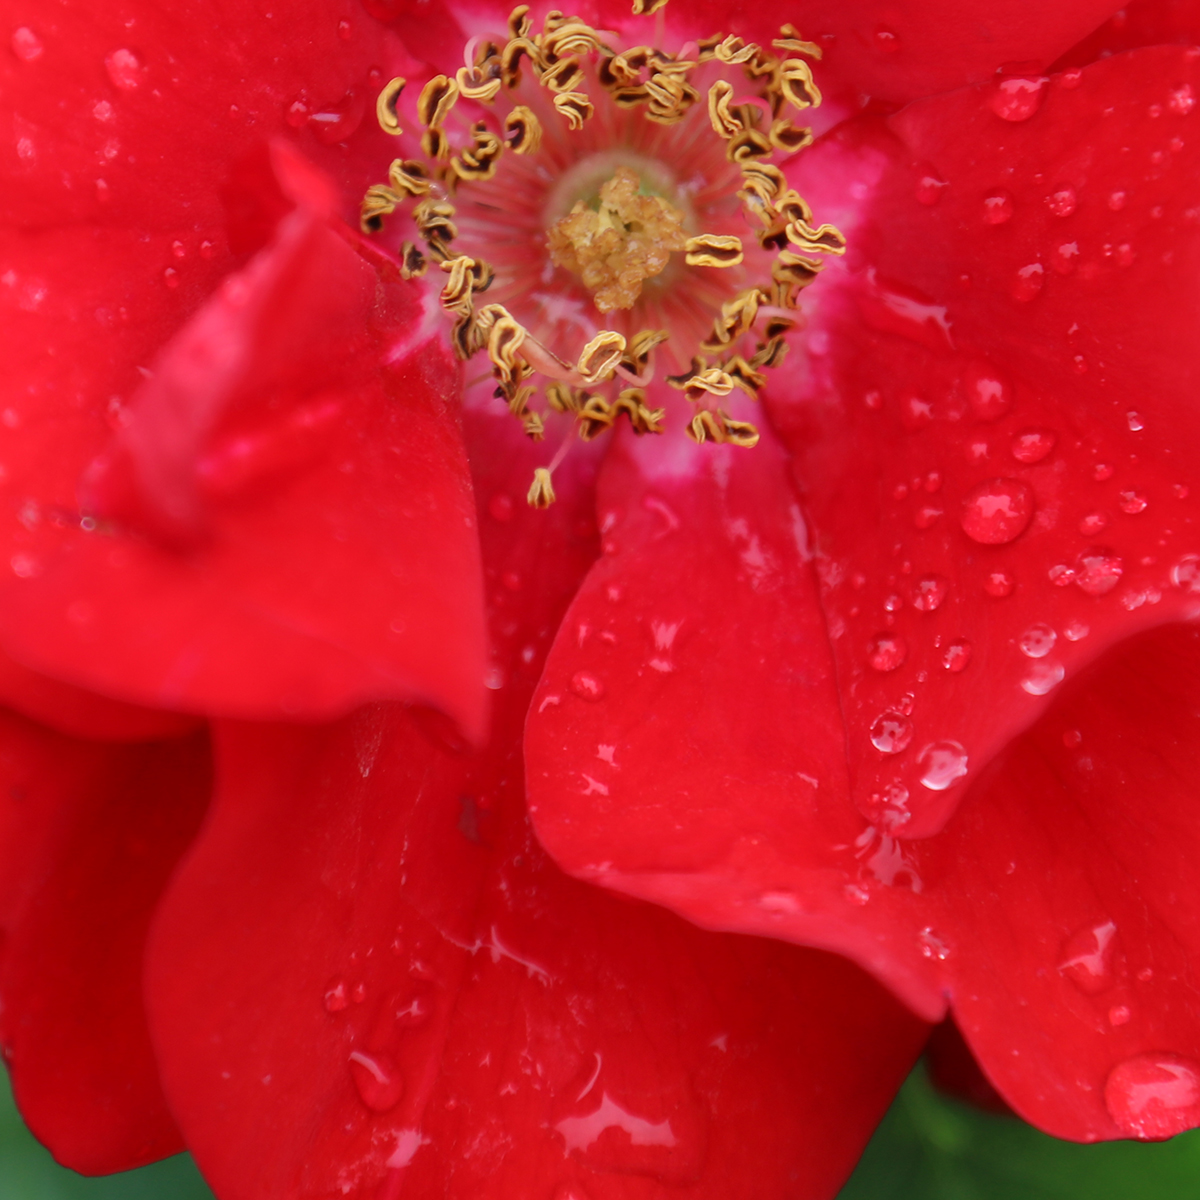 Raindrop on rose petals - almost possible to see the photographer, but not quite